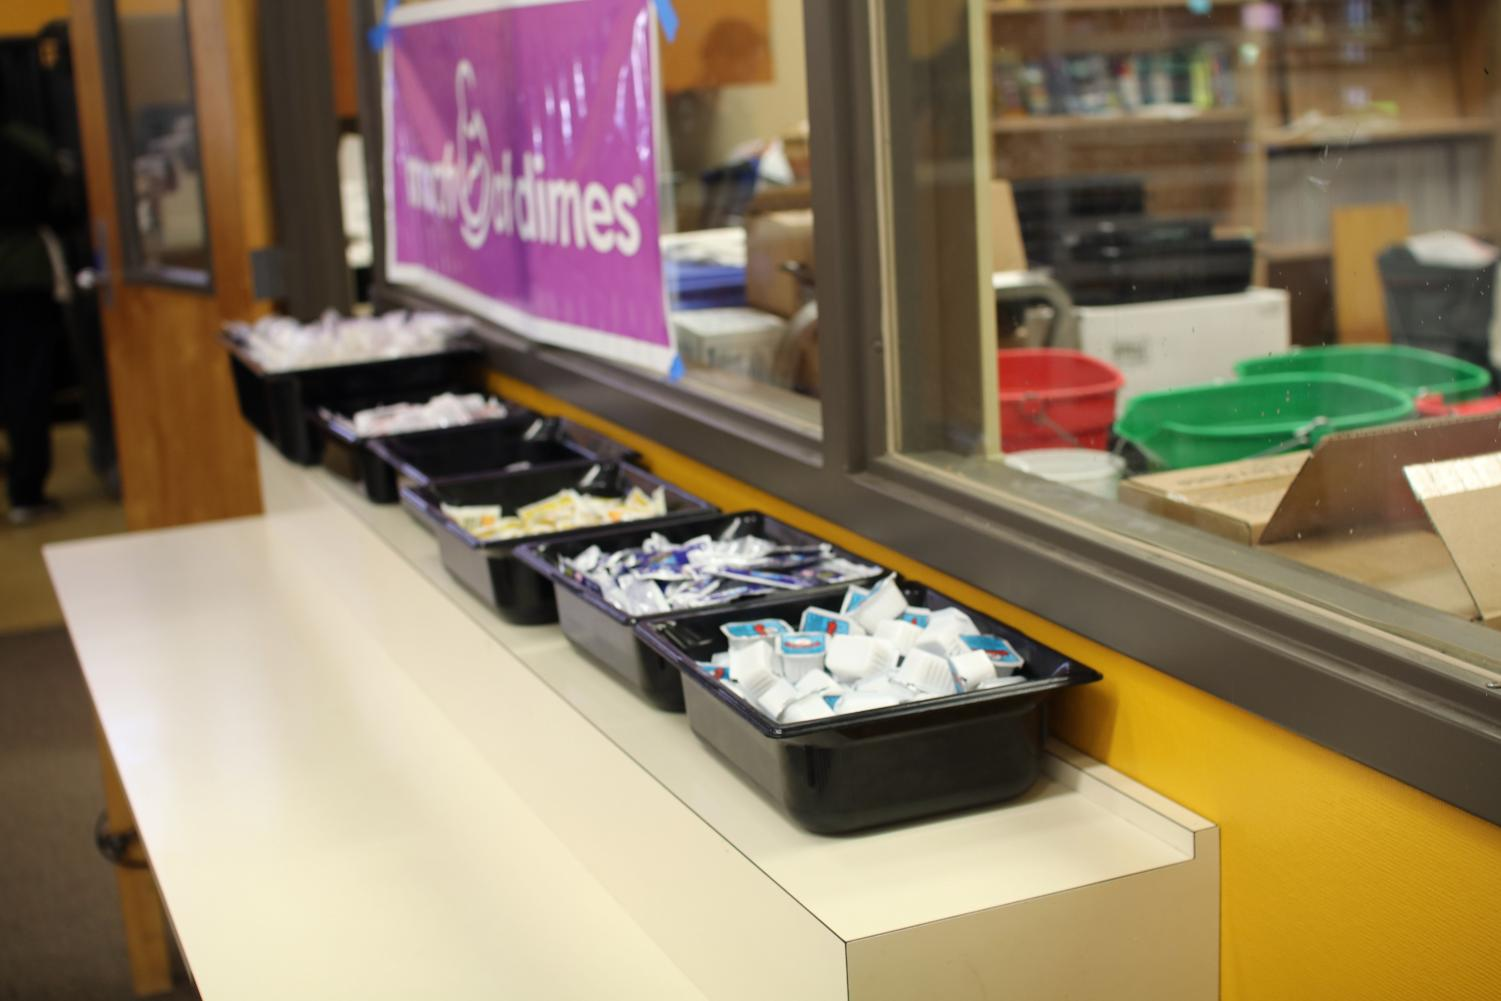 Row+of+condiments+for+students%27+lunches.+